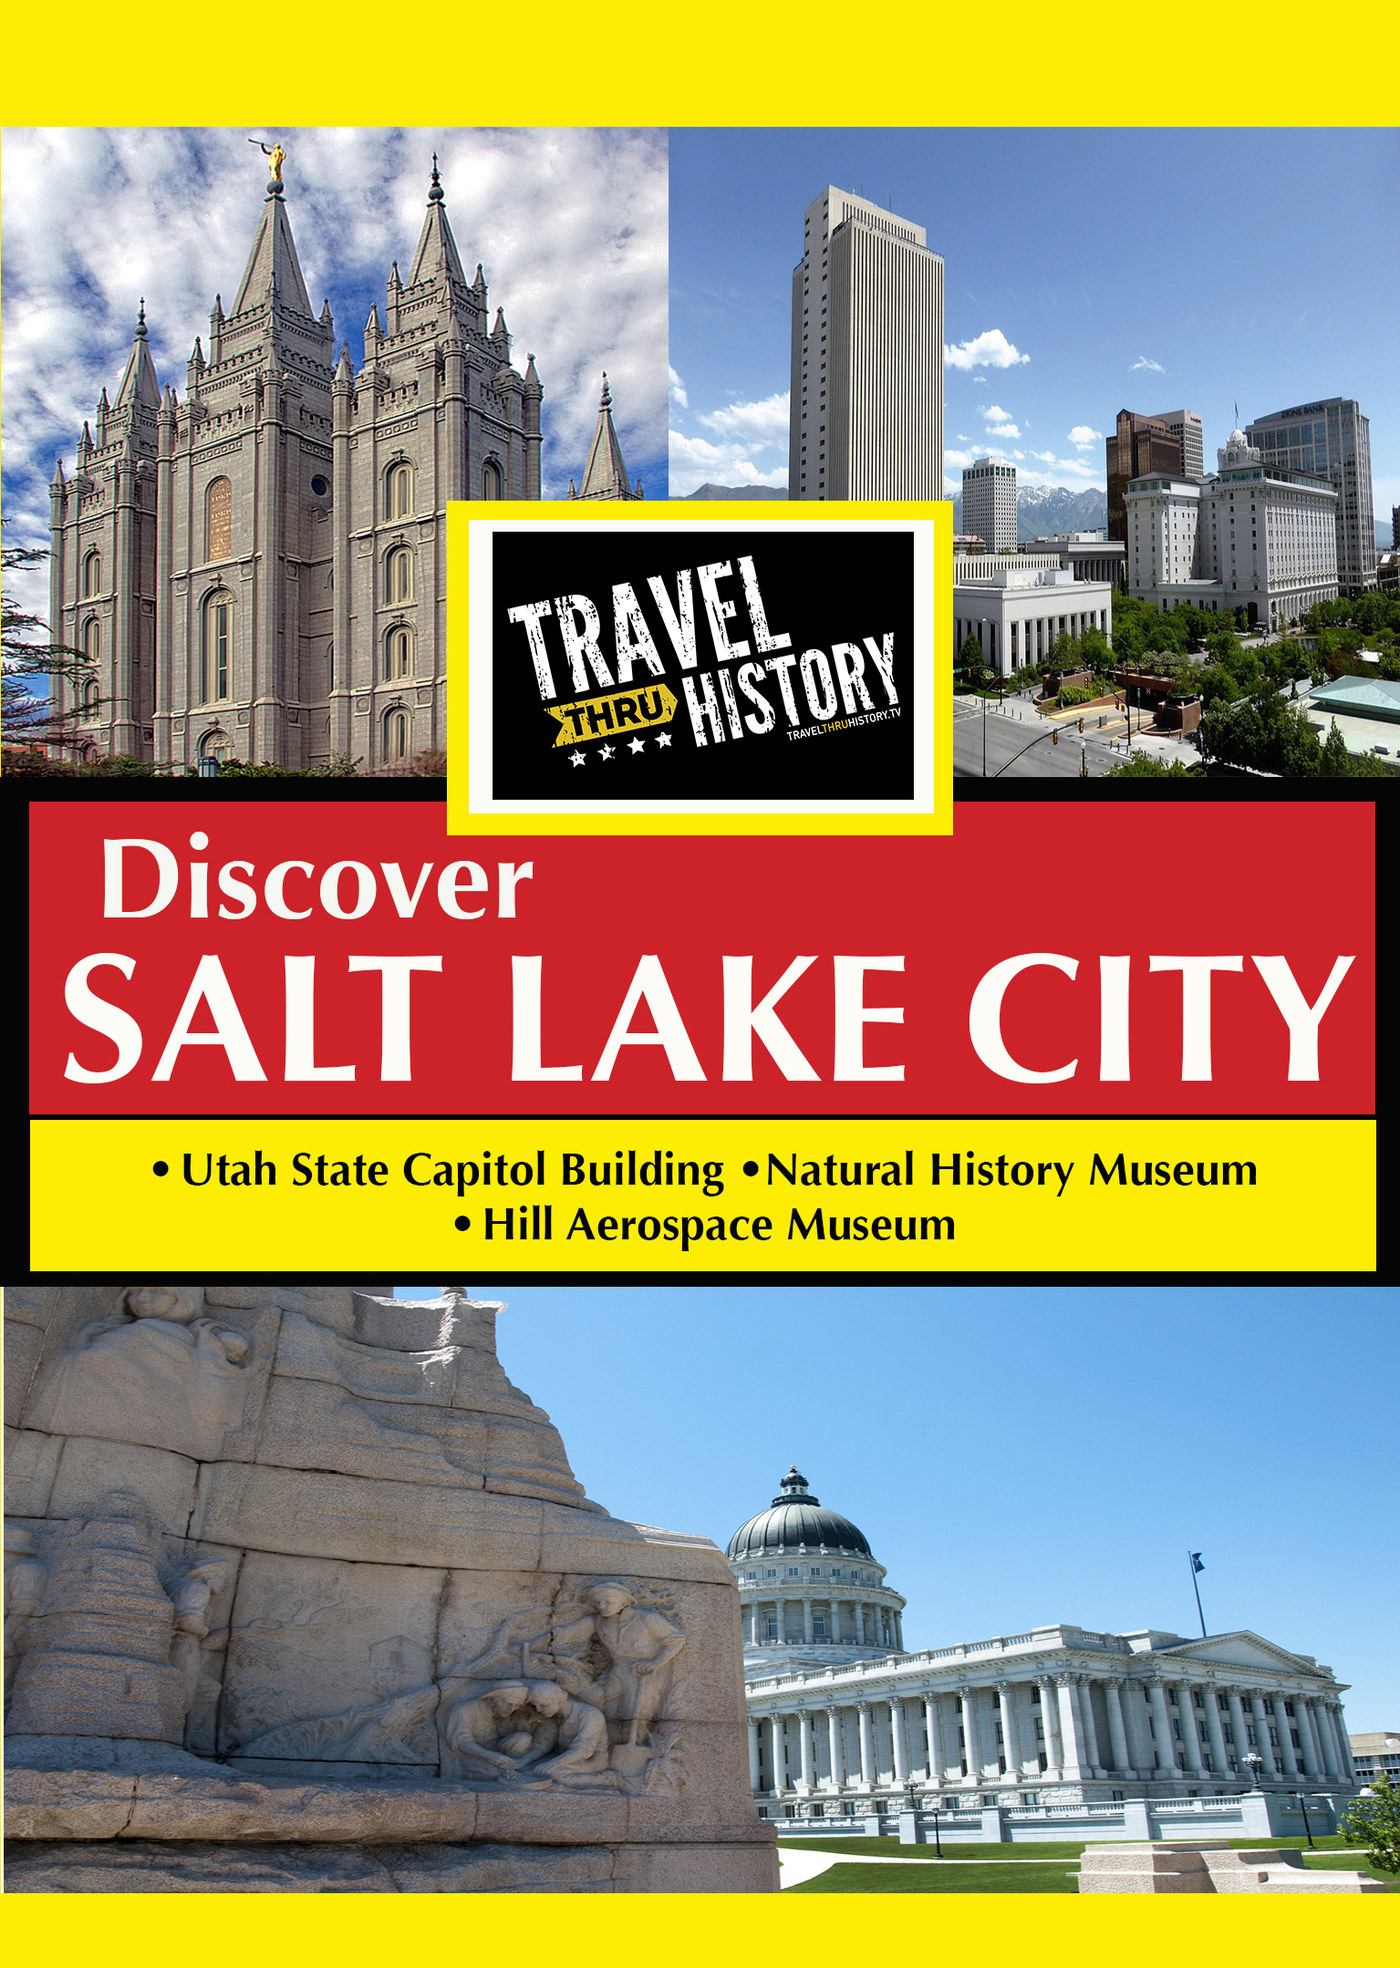 T8967 - Discover Salt Lake City